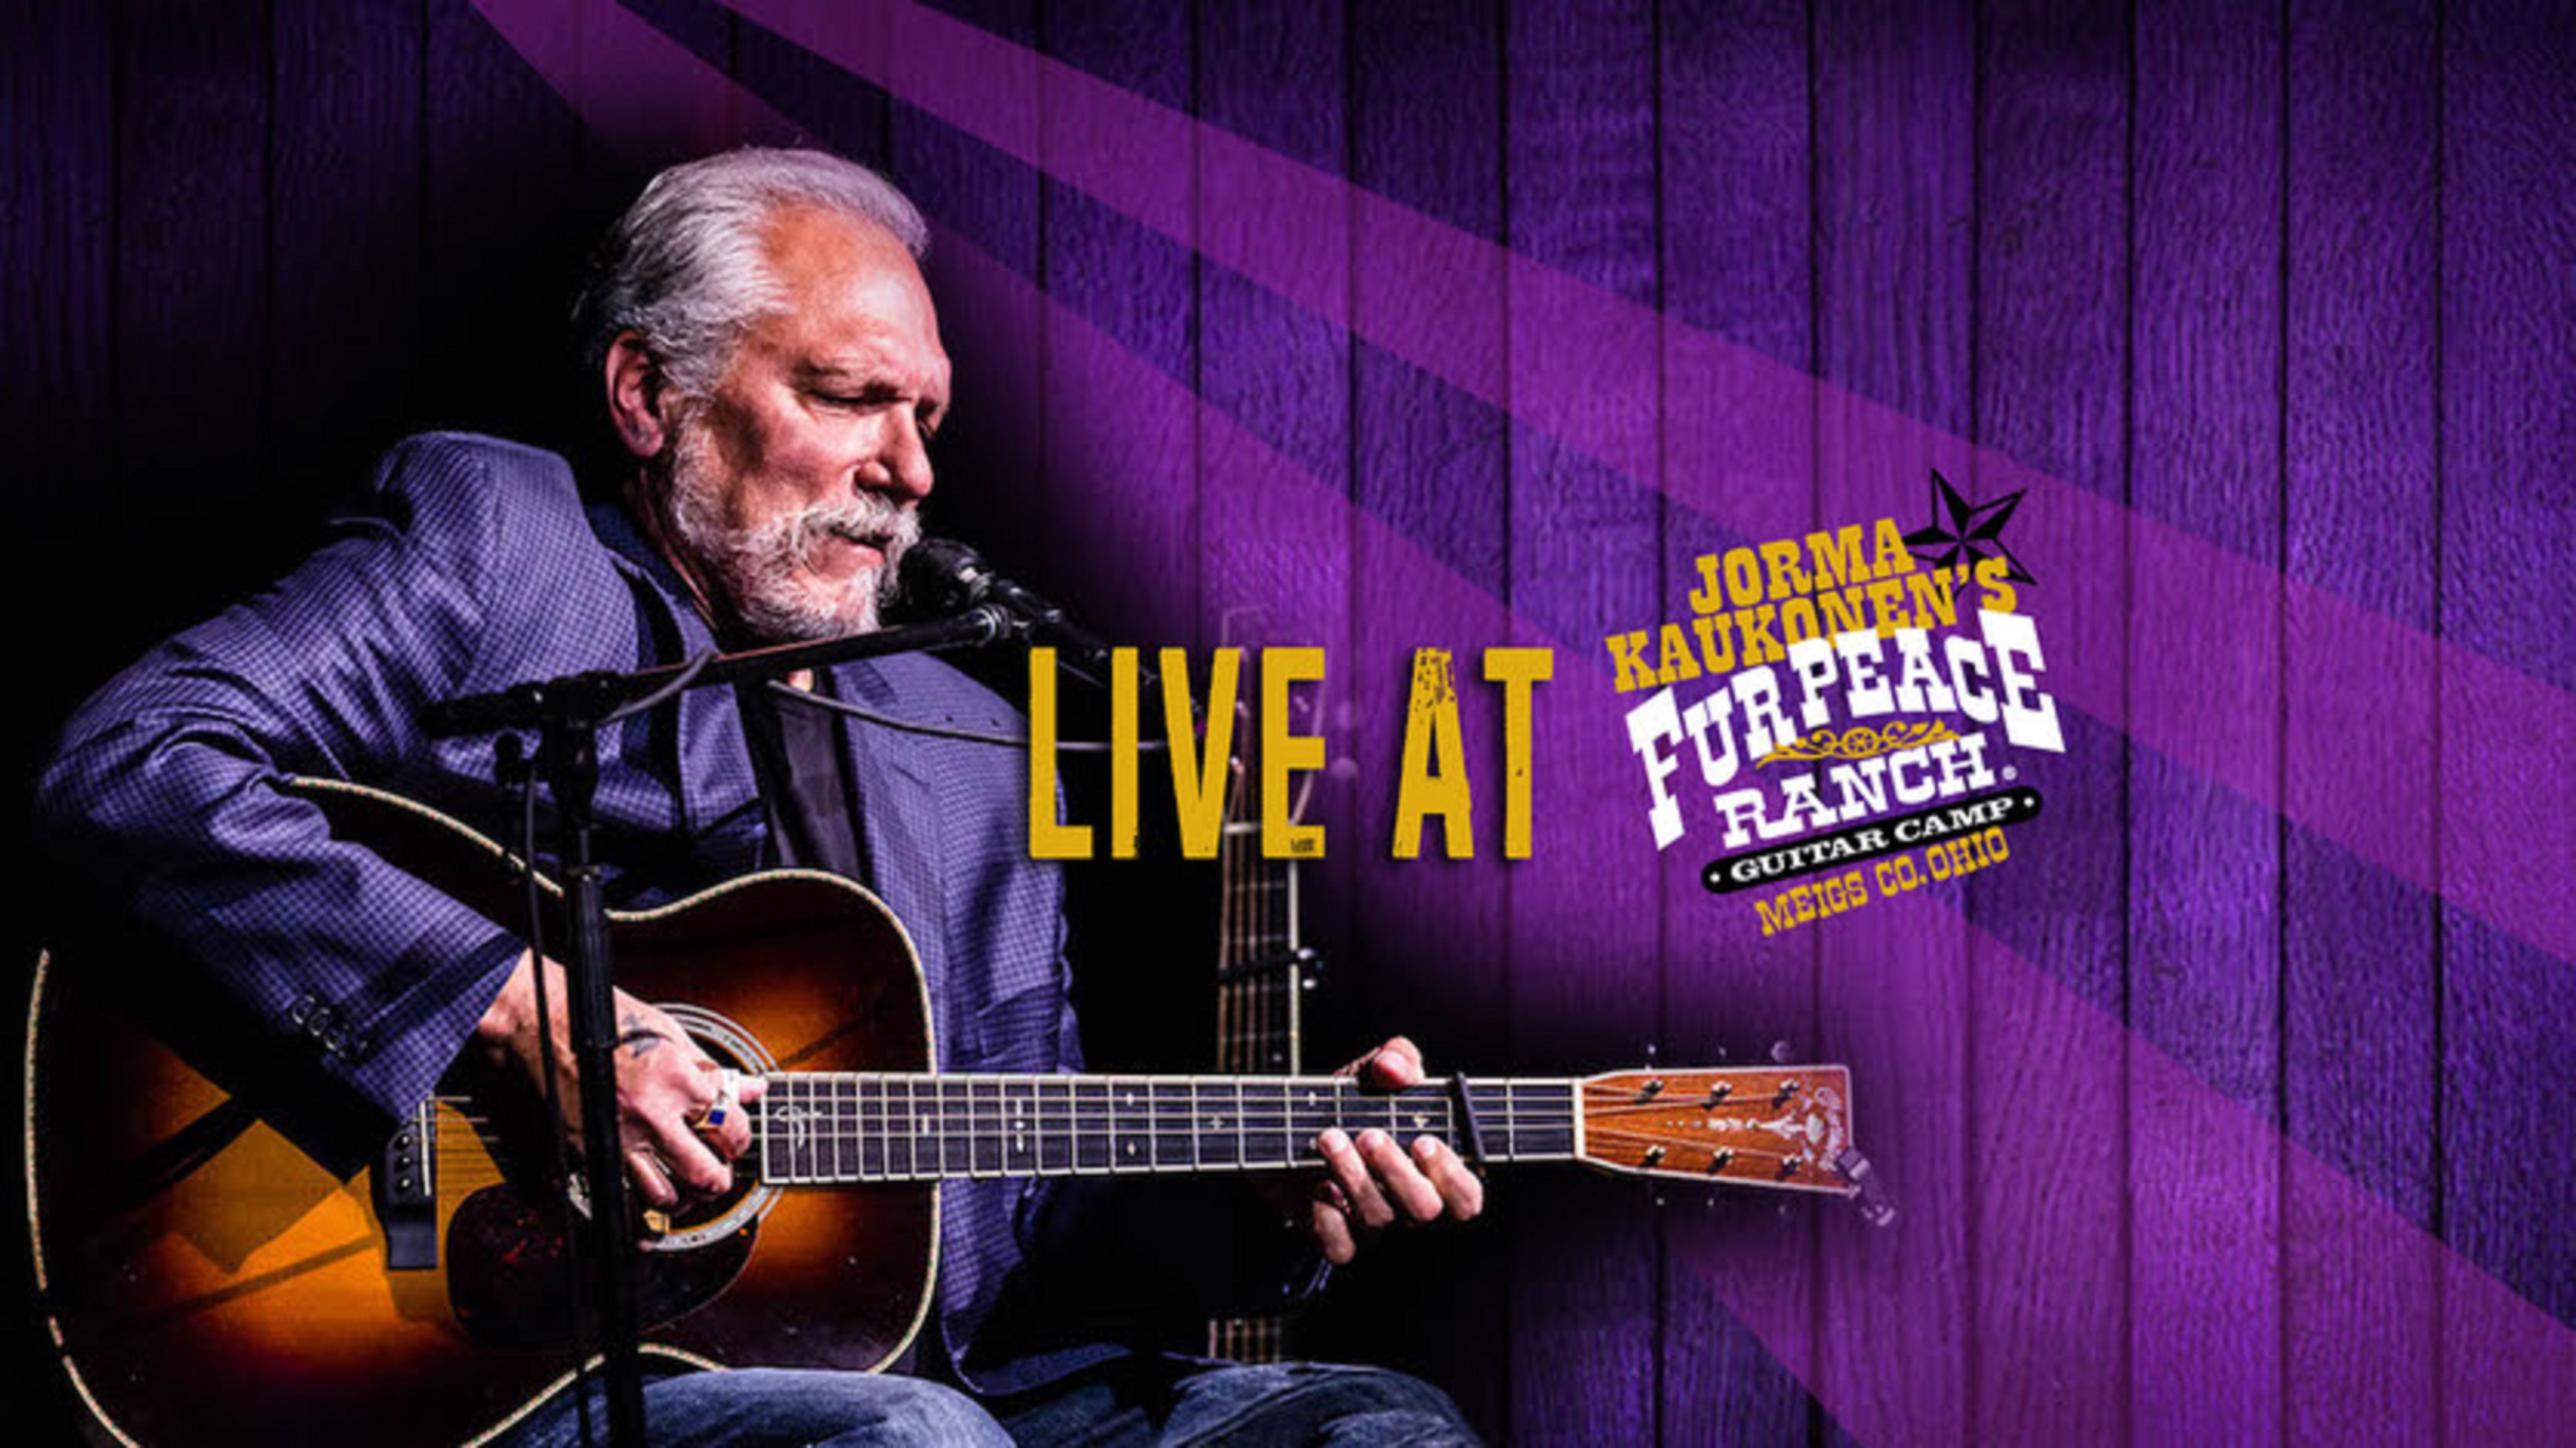 Jorma Kaukonen's Stay in Peace Live Stream Show